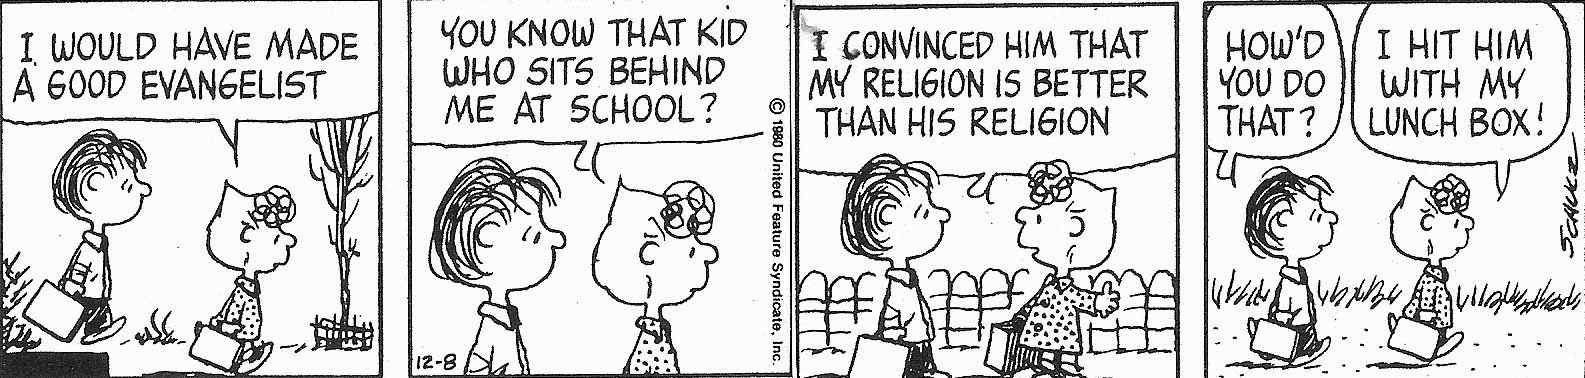 Funny Good Religious Evangelist Cartoon Joke Picture